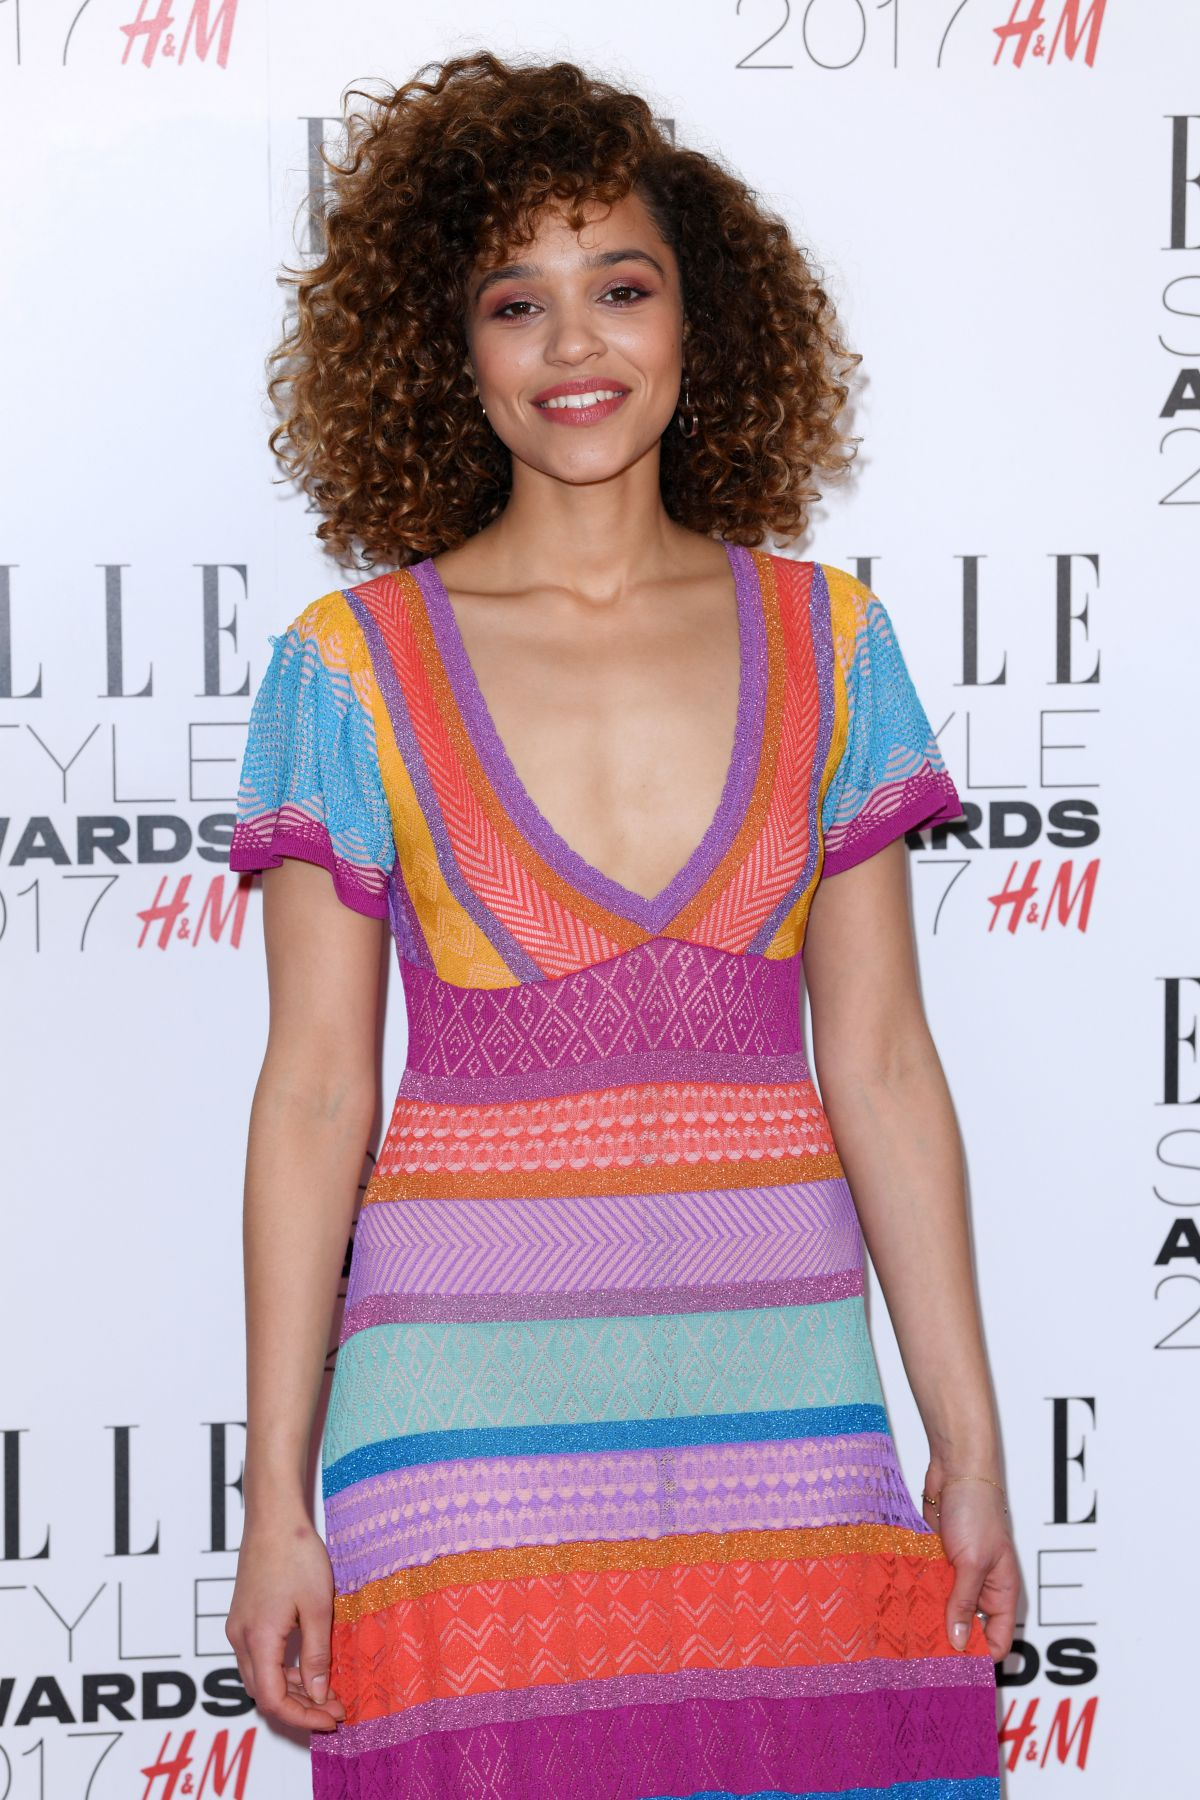 IZZY BIZU at Elle Style Awards 2017 in London 02/13/2017